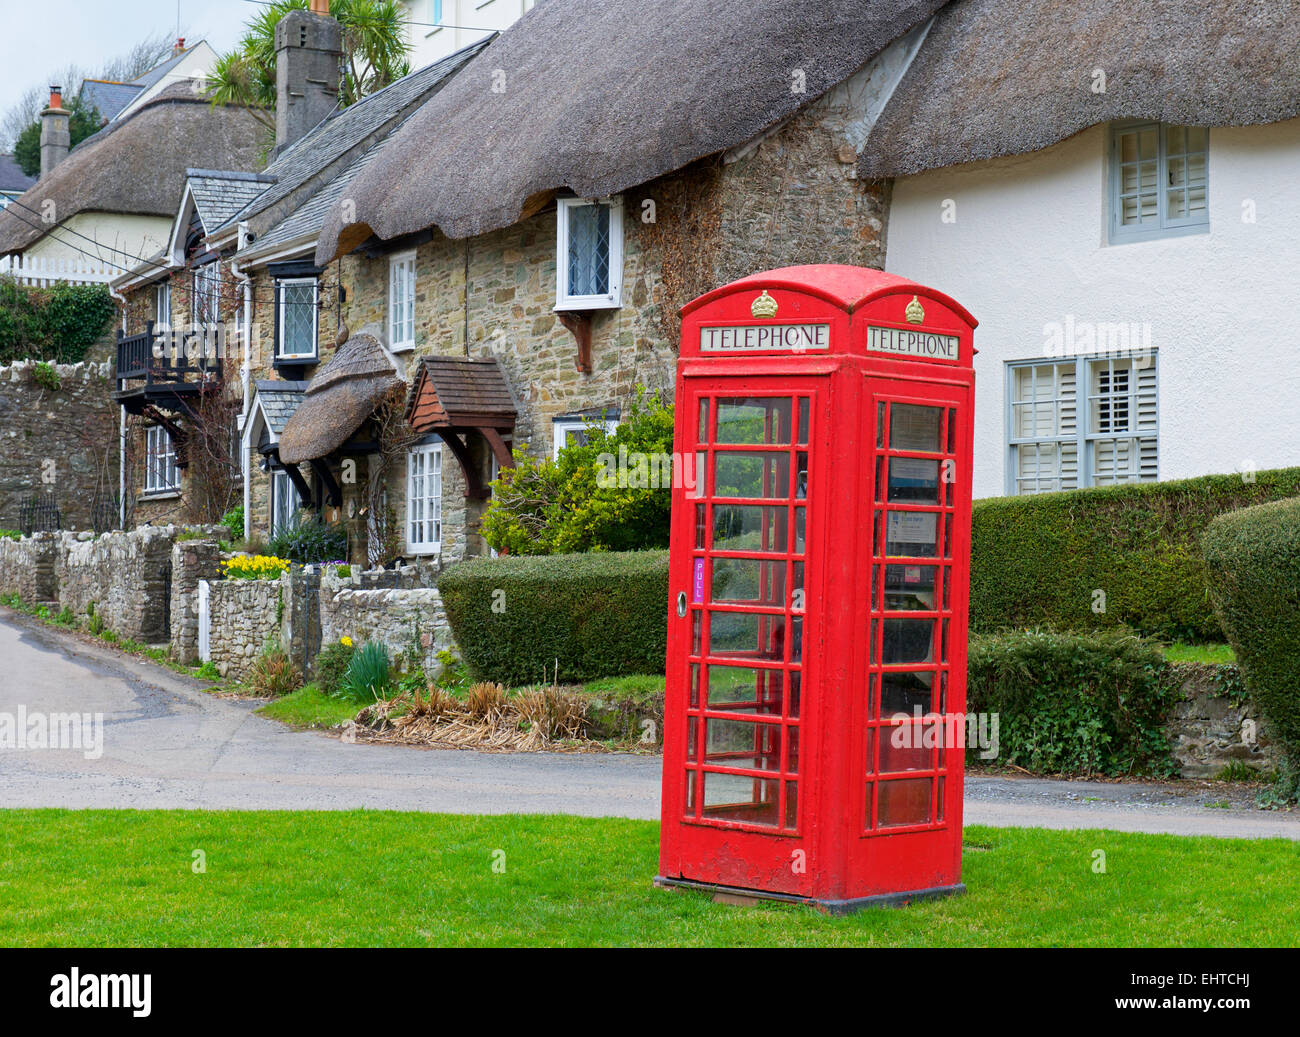 Phone box and thatched cottages at Lower Batson, near Salcombe, Devon, England UK - Stock Image